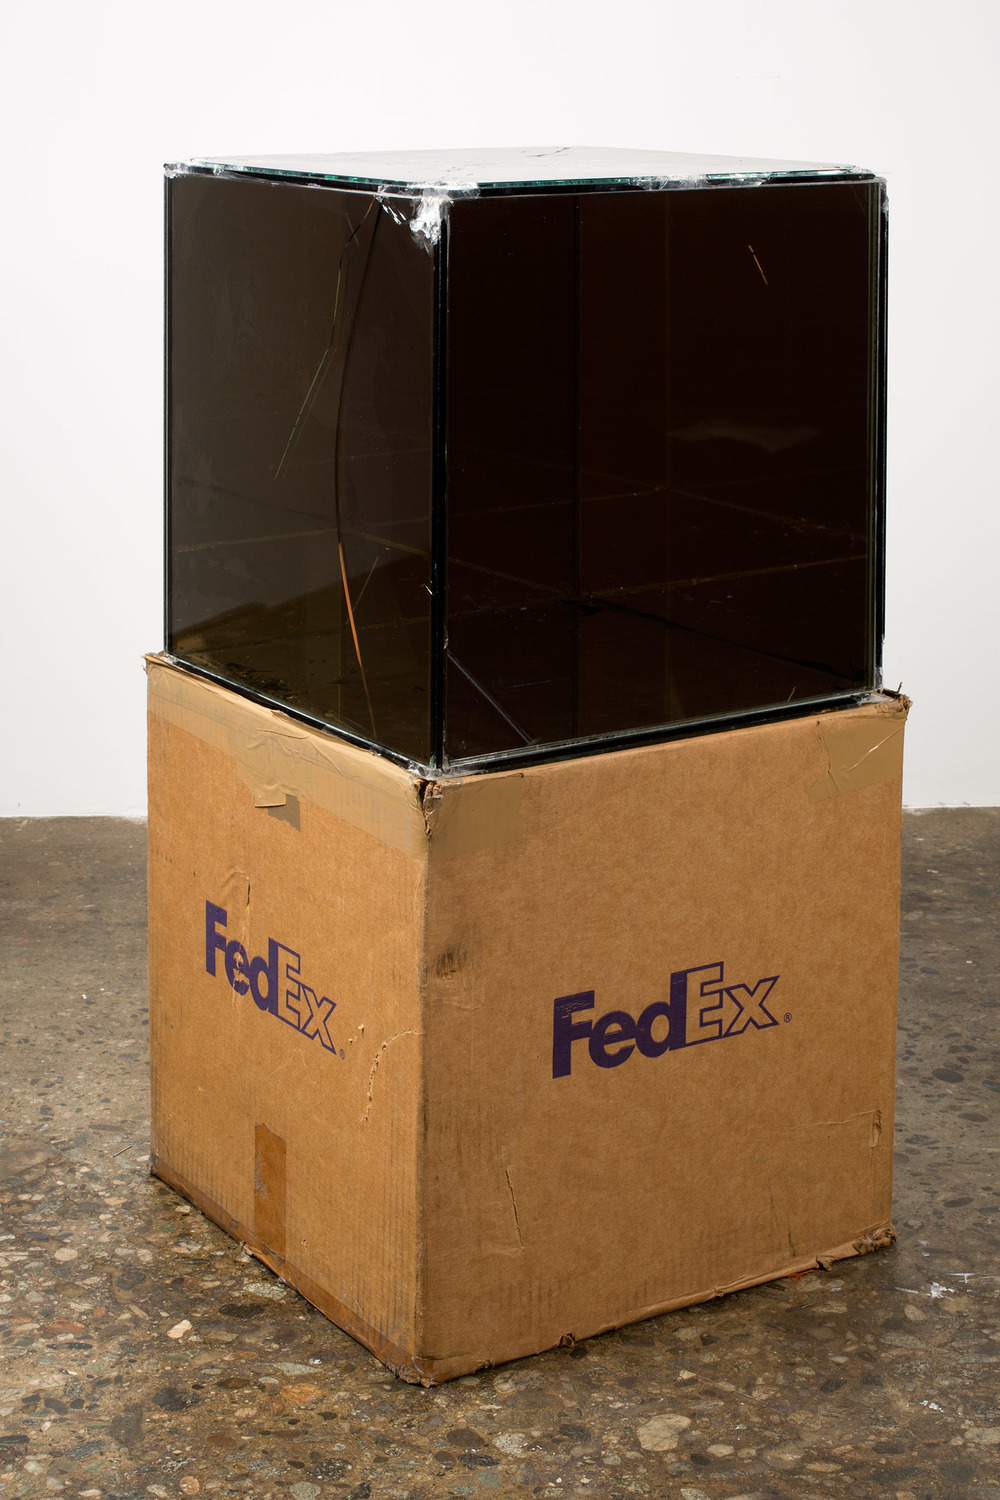 FedEx® Kraft Box  © 2005 FEDEX 330504 10/05 SSCC, Priority Overnight, Los Angeles–Miami trk#865344981303, October 29–30, 2008, Priority Overnight, Miami–Ann Arbor trk#861049125148, March 3–4, 2009, Standard Overnight, Ann Arbor–Los Angeles trk#868274625716, July 9–10, 2009, Standard Overnight, Los Angeles–New York trk# 774901718297, November 4–5, 2015, Standard Overnight, New York–Los Angeles trk#775241156204, December 21–22, 2015    2008–   Laminated Mirropane, FedEx shipping box, accrued FedEx shipping and tracking labels, silicone, metal, tape  16 x 16 x 16 inches   FedEx Glass Works, 2007–